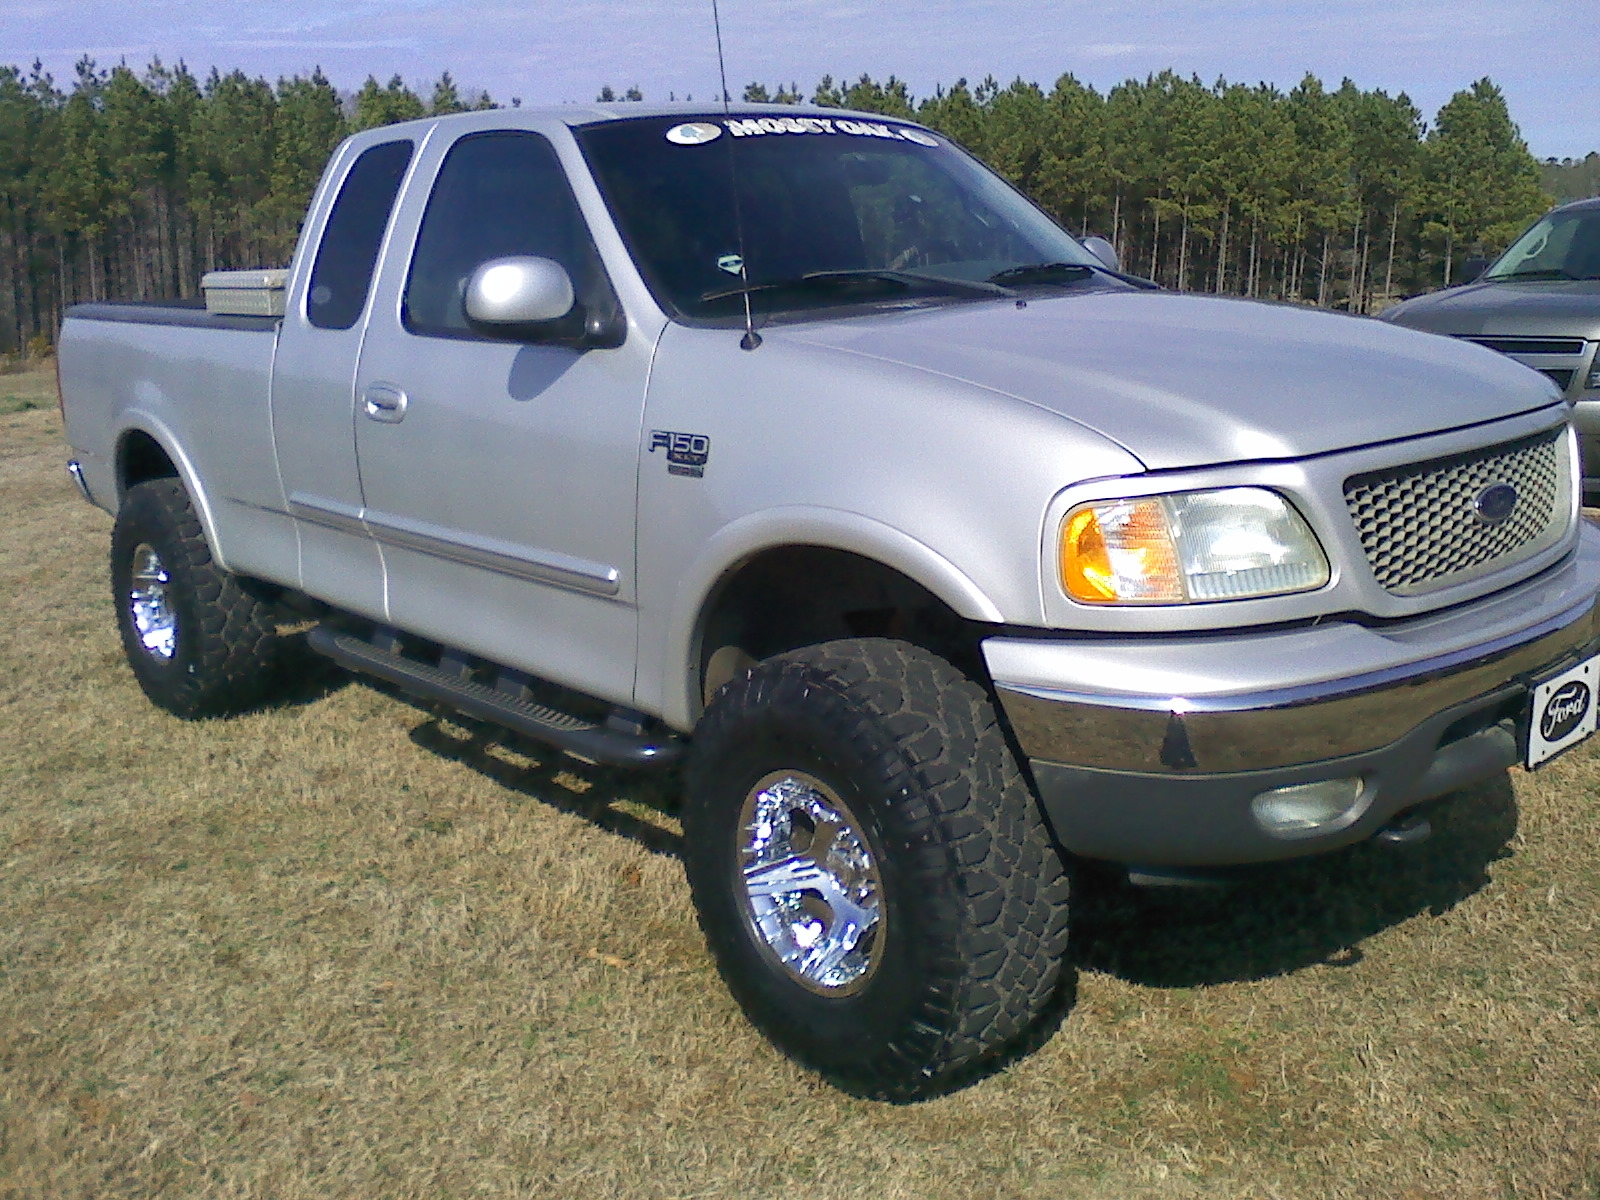 016inchf150 2001 Ford F150 Super Cabshort Bed 4d Specs